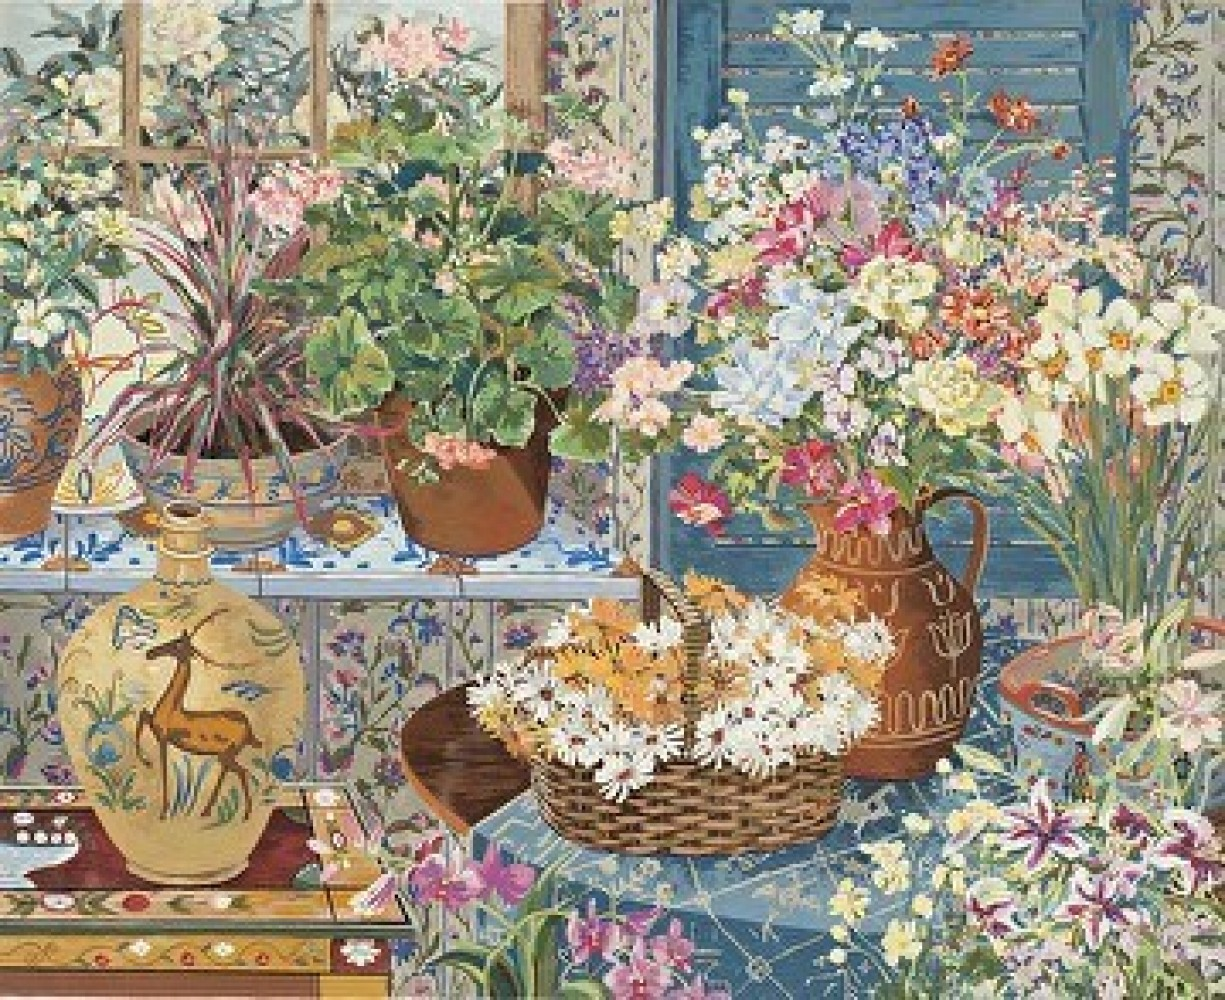 Spanish Tile and Geraniums 1984